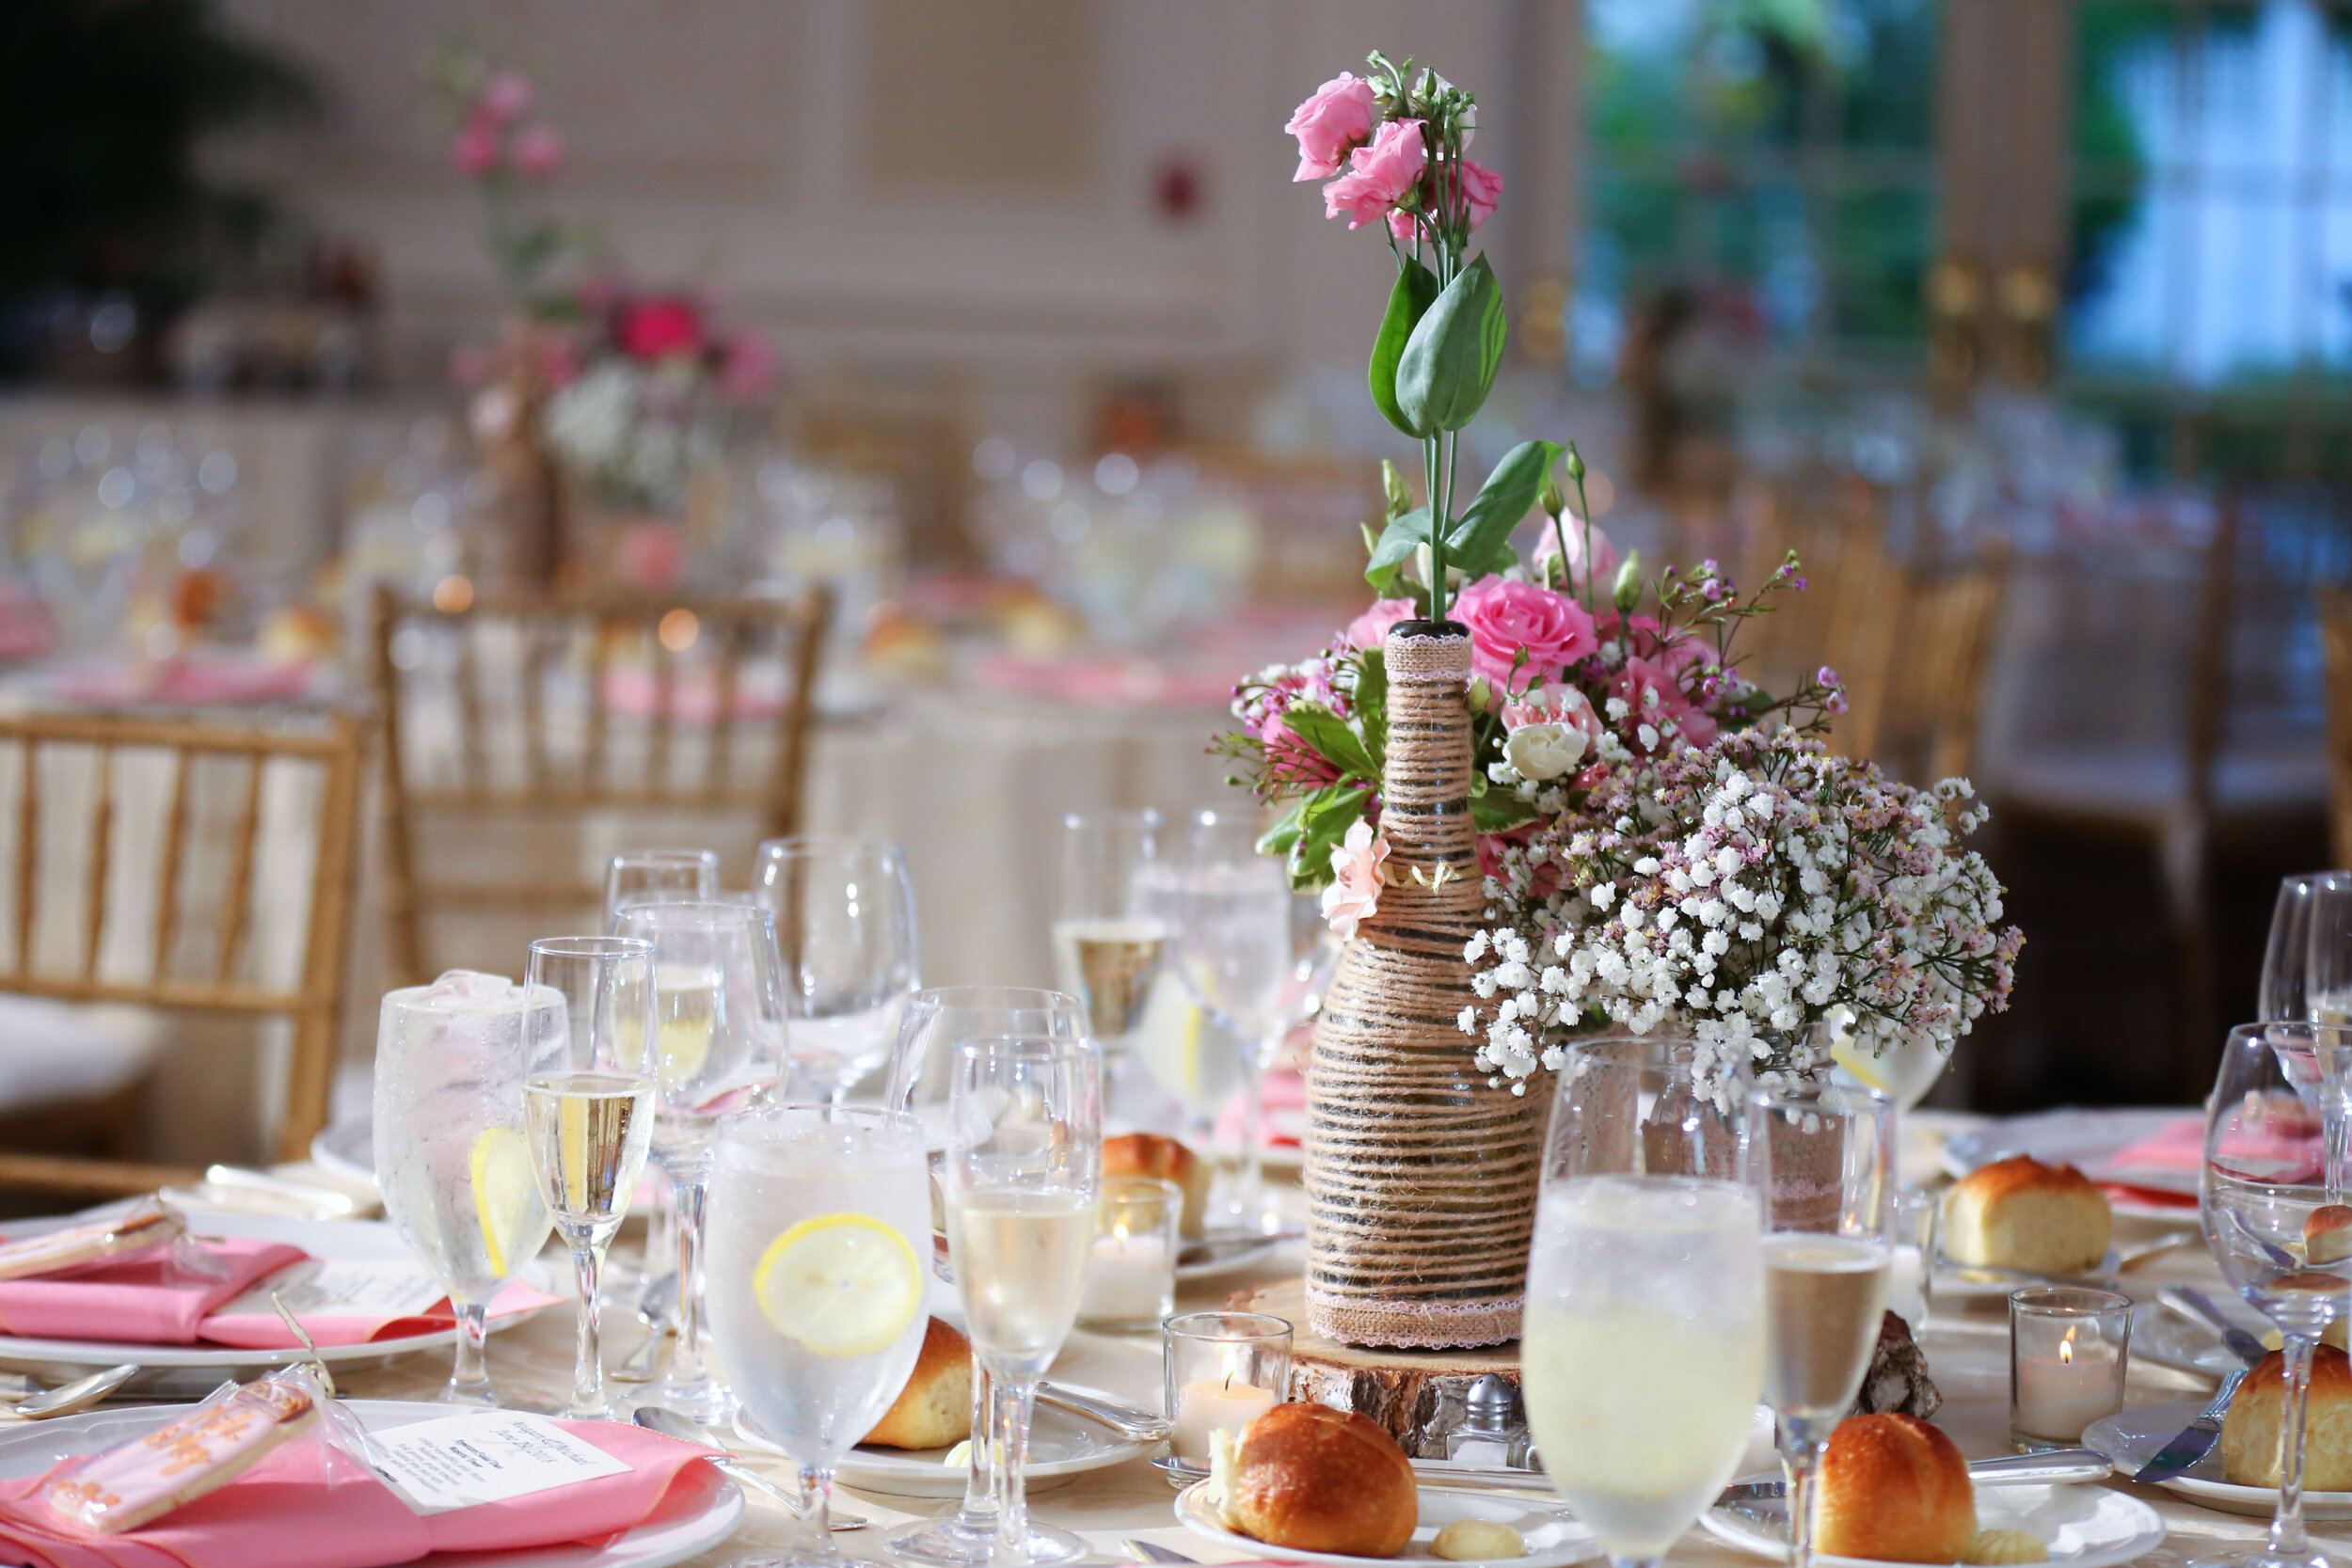 LightMaster-Studios-wedding-reception-at-the-meadow-wood-manor-in with-floral-arrangements-pink-and white-flowers-with-back-lighting-Lo-Rez-.jpg